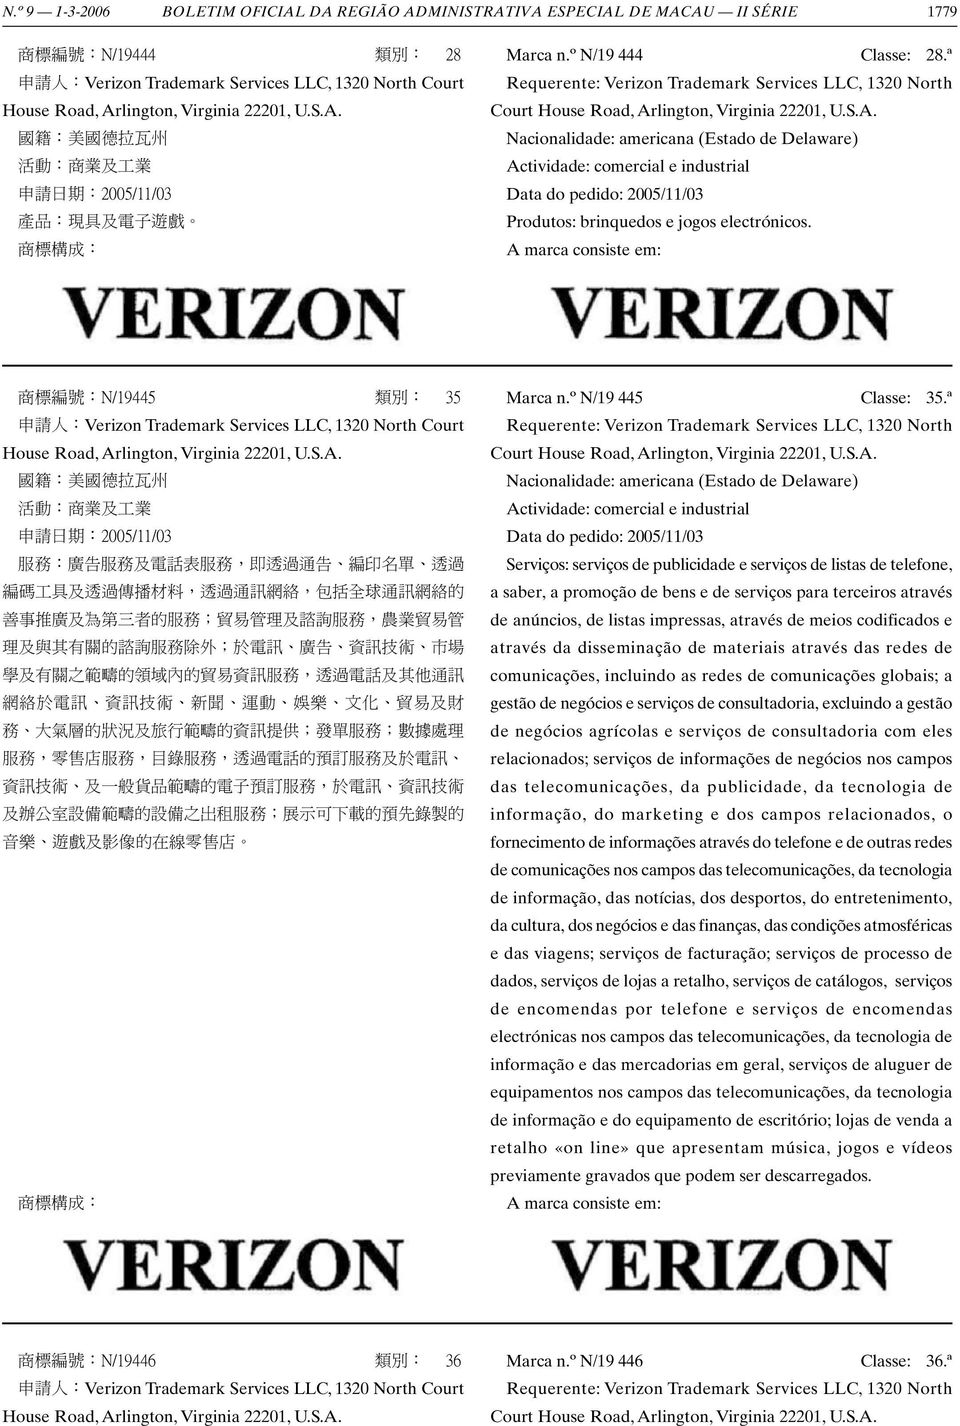 ª Requerente: Verizon Trademark Services LLC, 1320 North Court House Road, Arlington, Virginia 22201, U.S.A. Nacionalidade: americana (Estado de Delaware) Data do pedido: 2005/11/03 Produtos: brinquedos e jogos electrónicos.